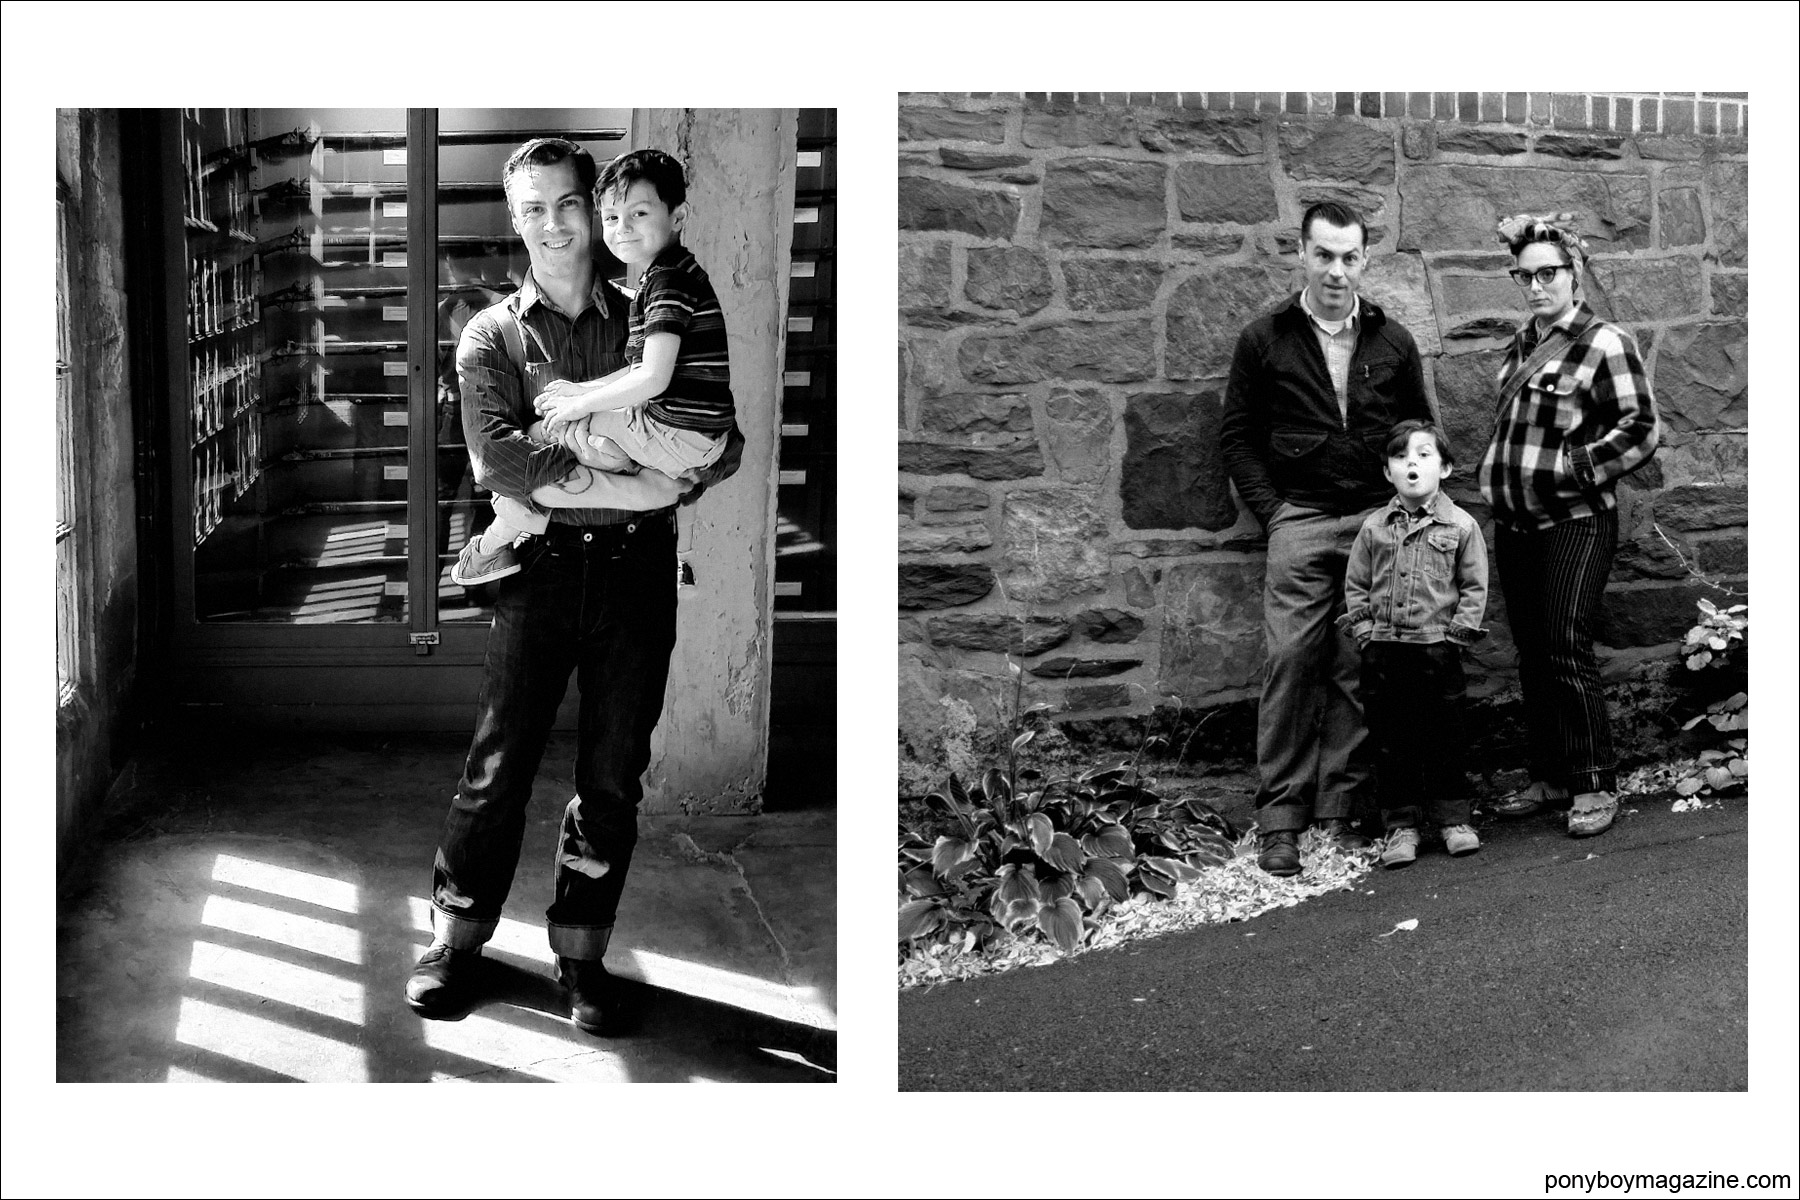 Family photos from the collection of Jim Landwehr, for Ponyboy Magazine.